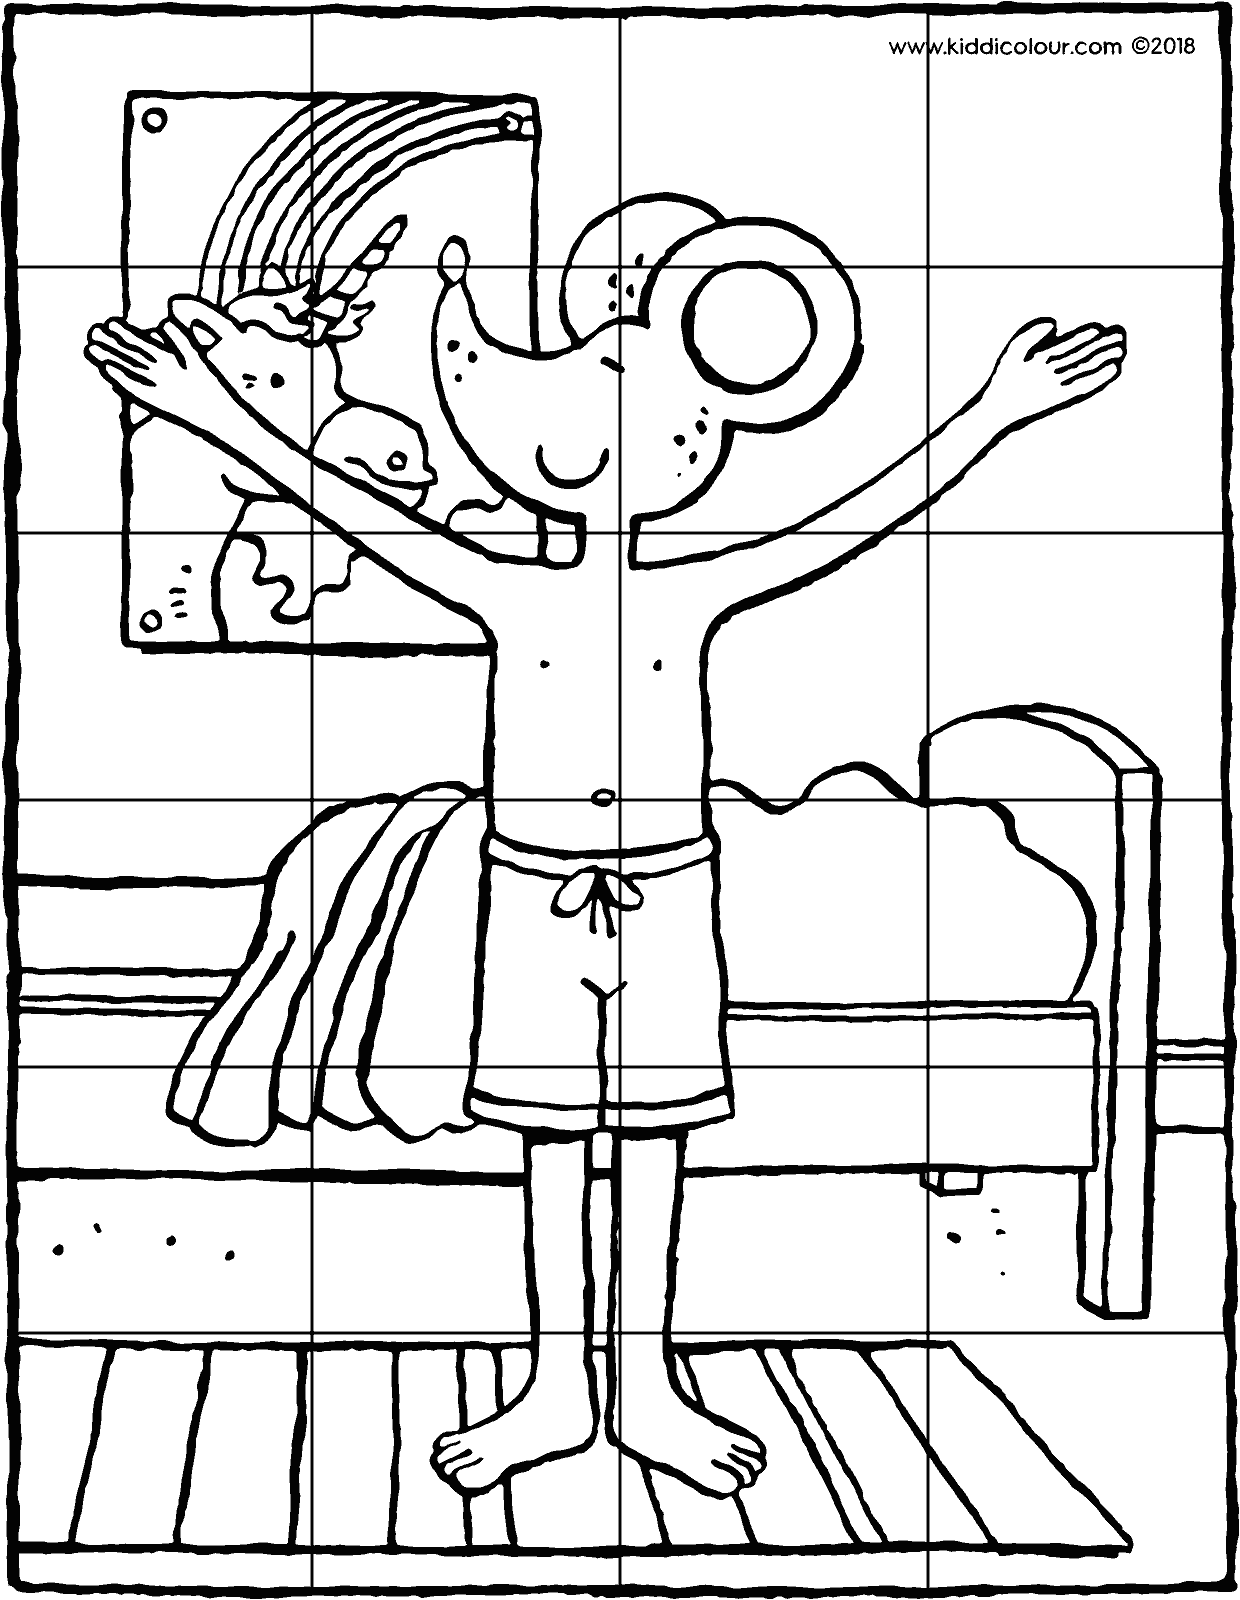 Thomas performing a sun salute puzzle 24 pieces colouring page drawing picture 01V